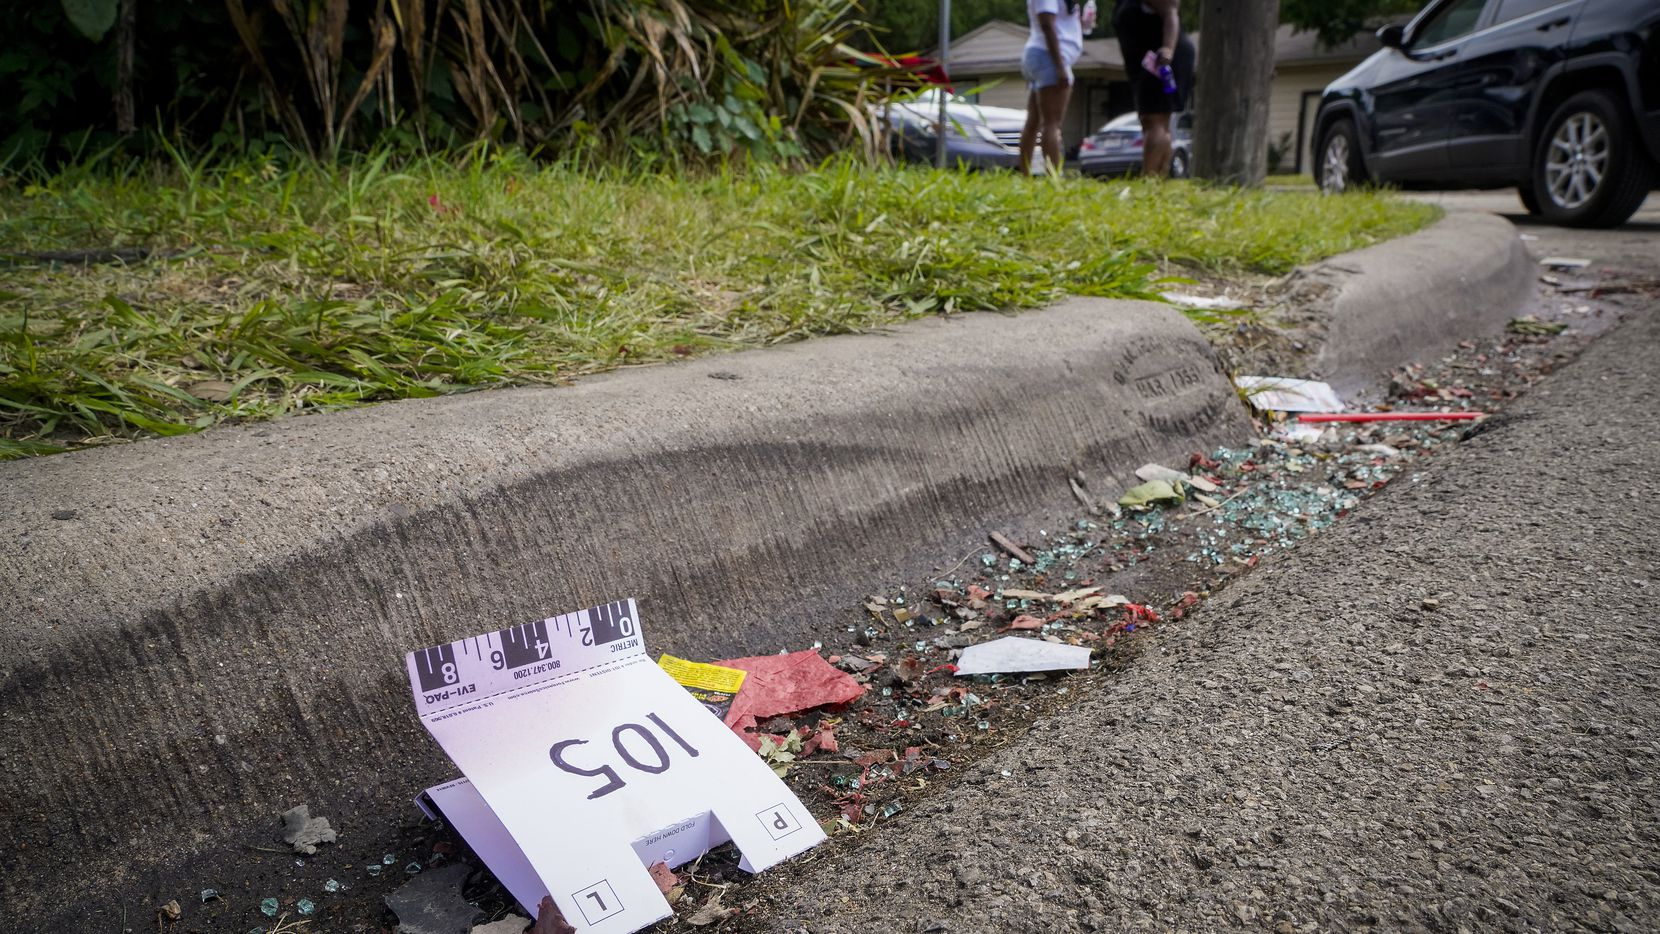 A crime scene evidence tent rests in the gutter near the scene of a shooting in the 8300 block of Towns Street in Hamilton Park on Monday, July 5, 2021, in Dallas. Five people were shot as a party wound down about 11:15 p.m. Sunday the 4th. Three of those have died. (Smiley N. Pool/The Dallas Morning News)